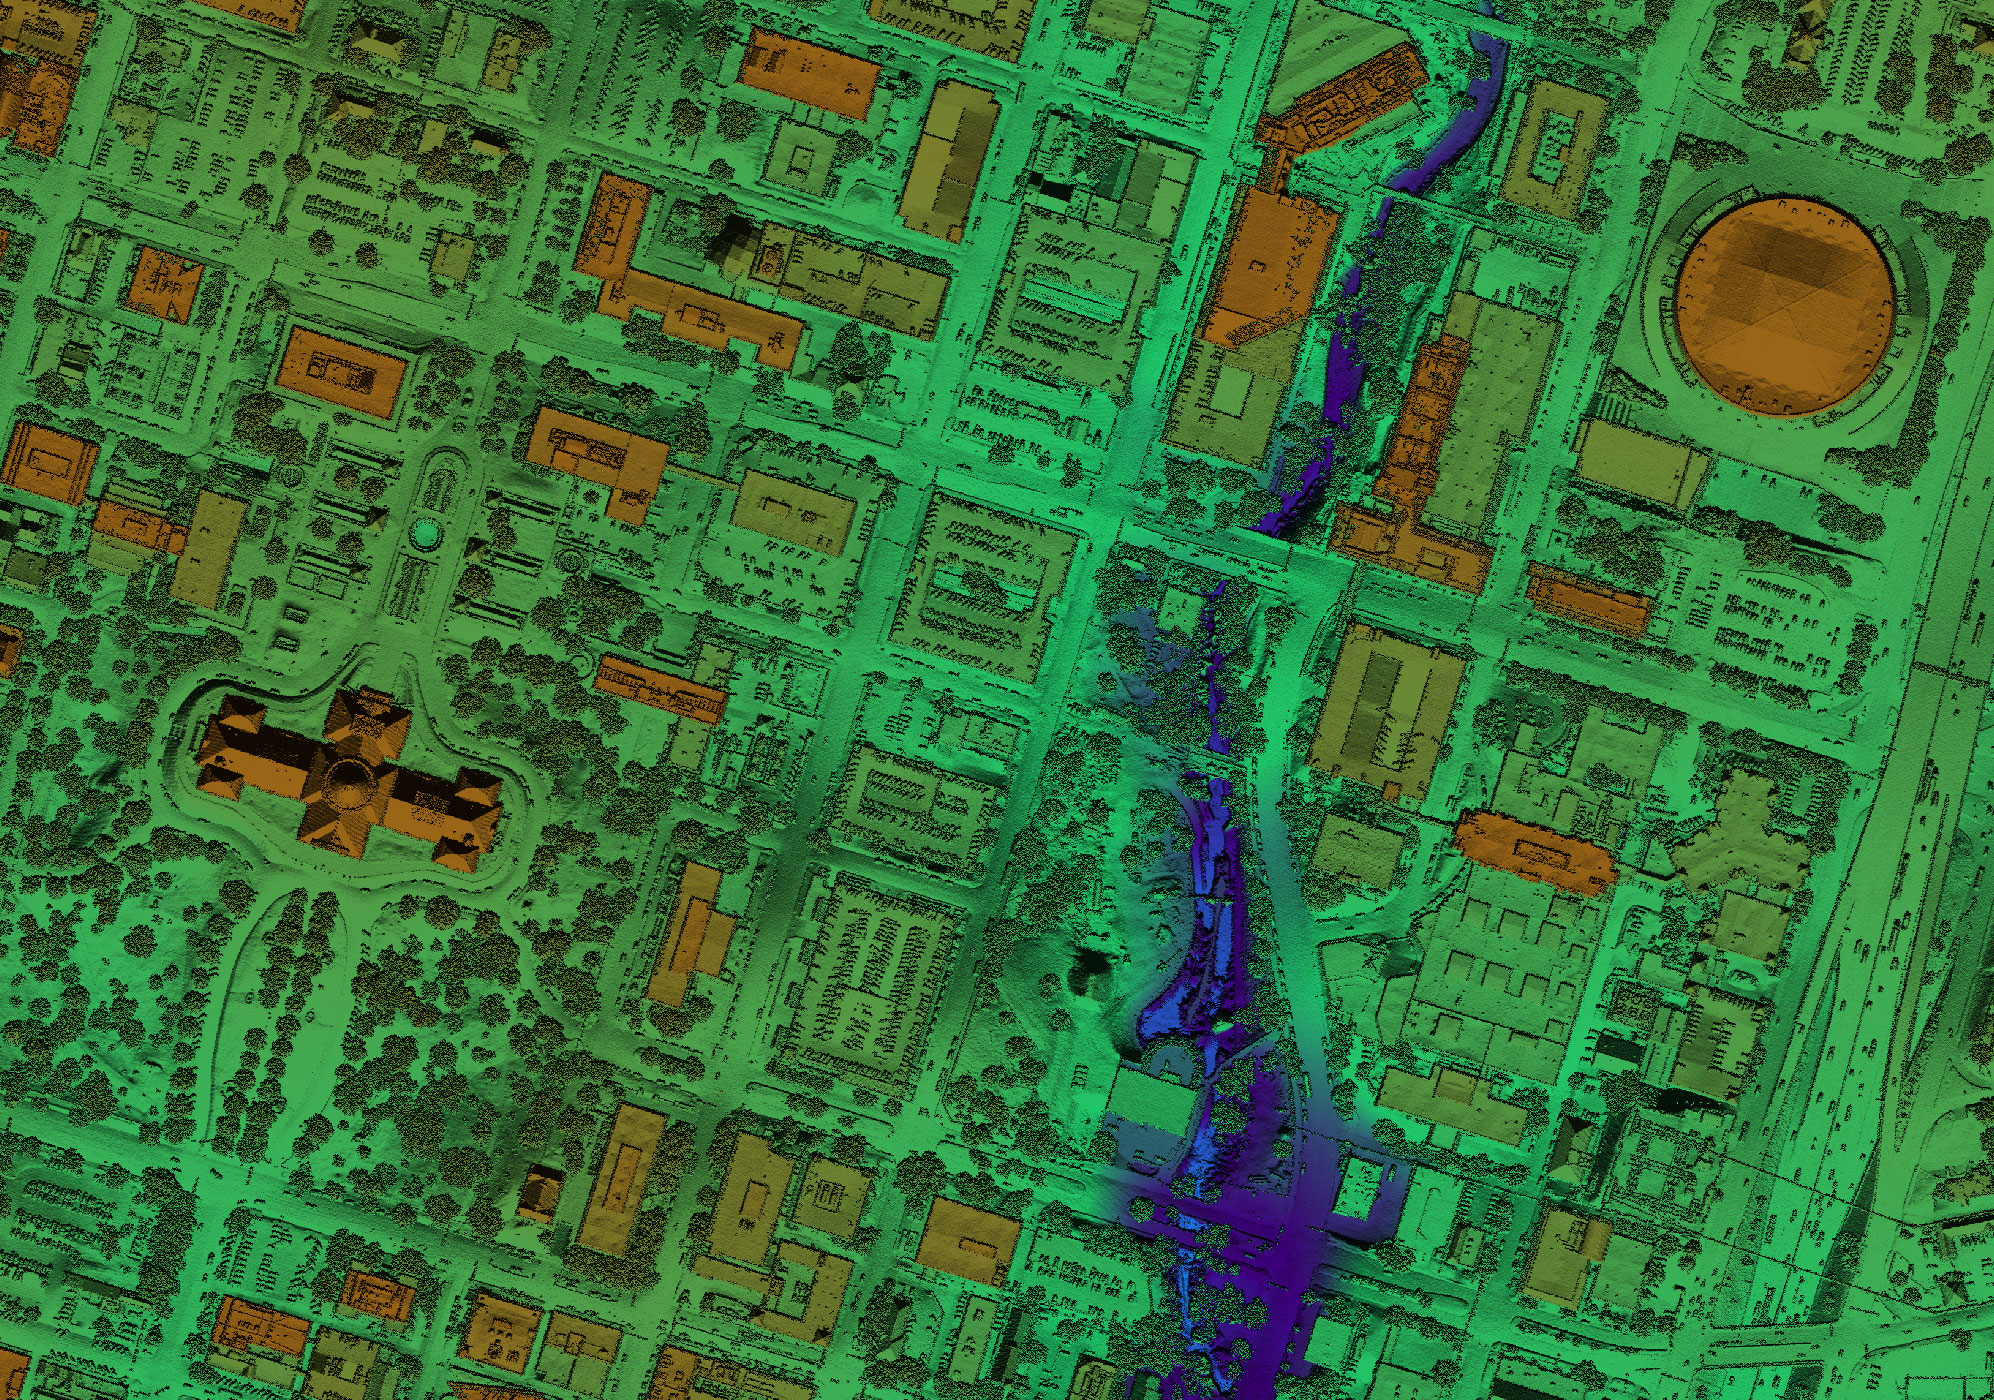 detail image of Central Texas Lidar